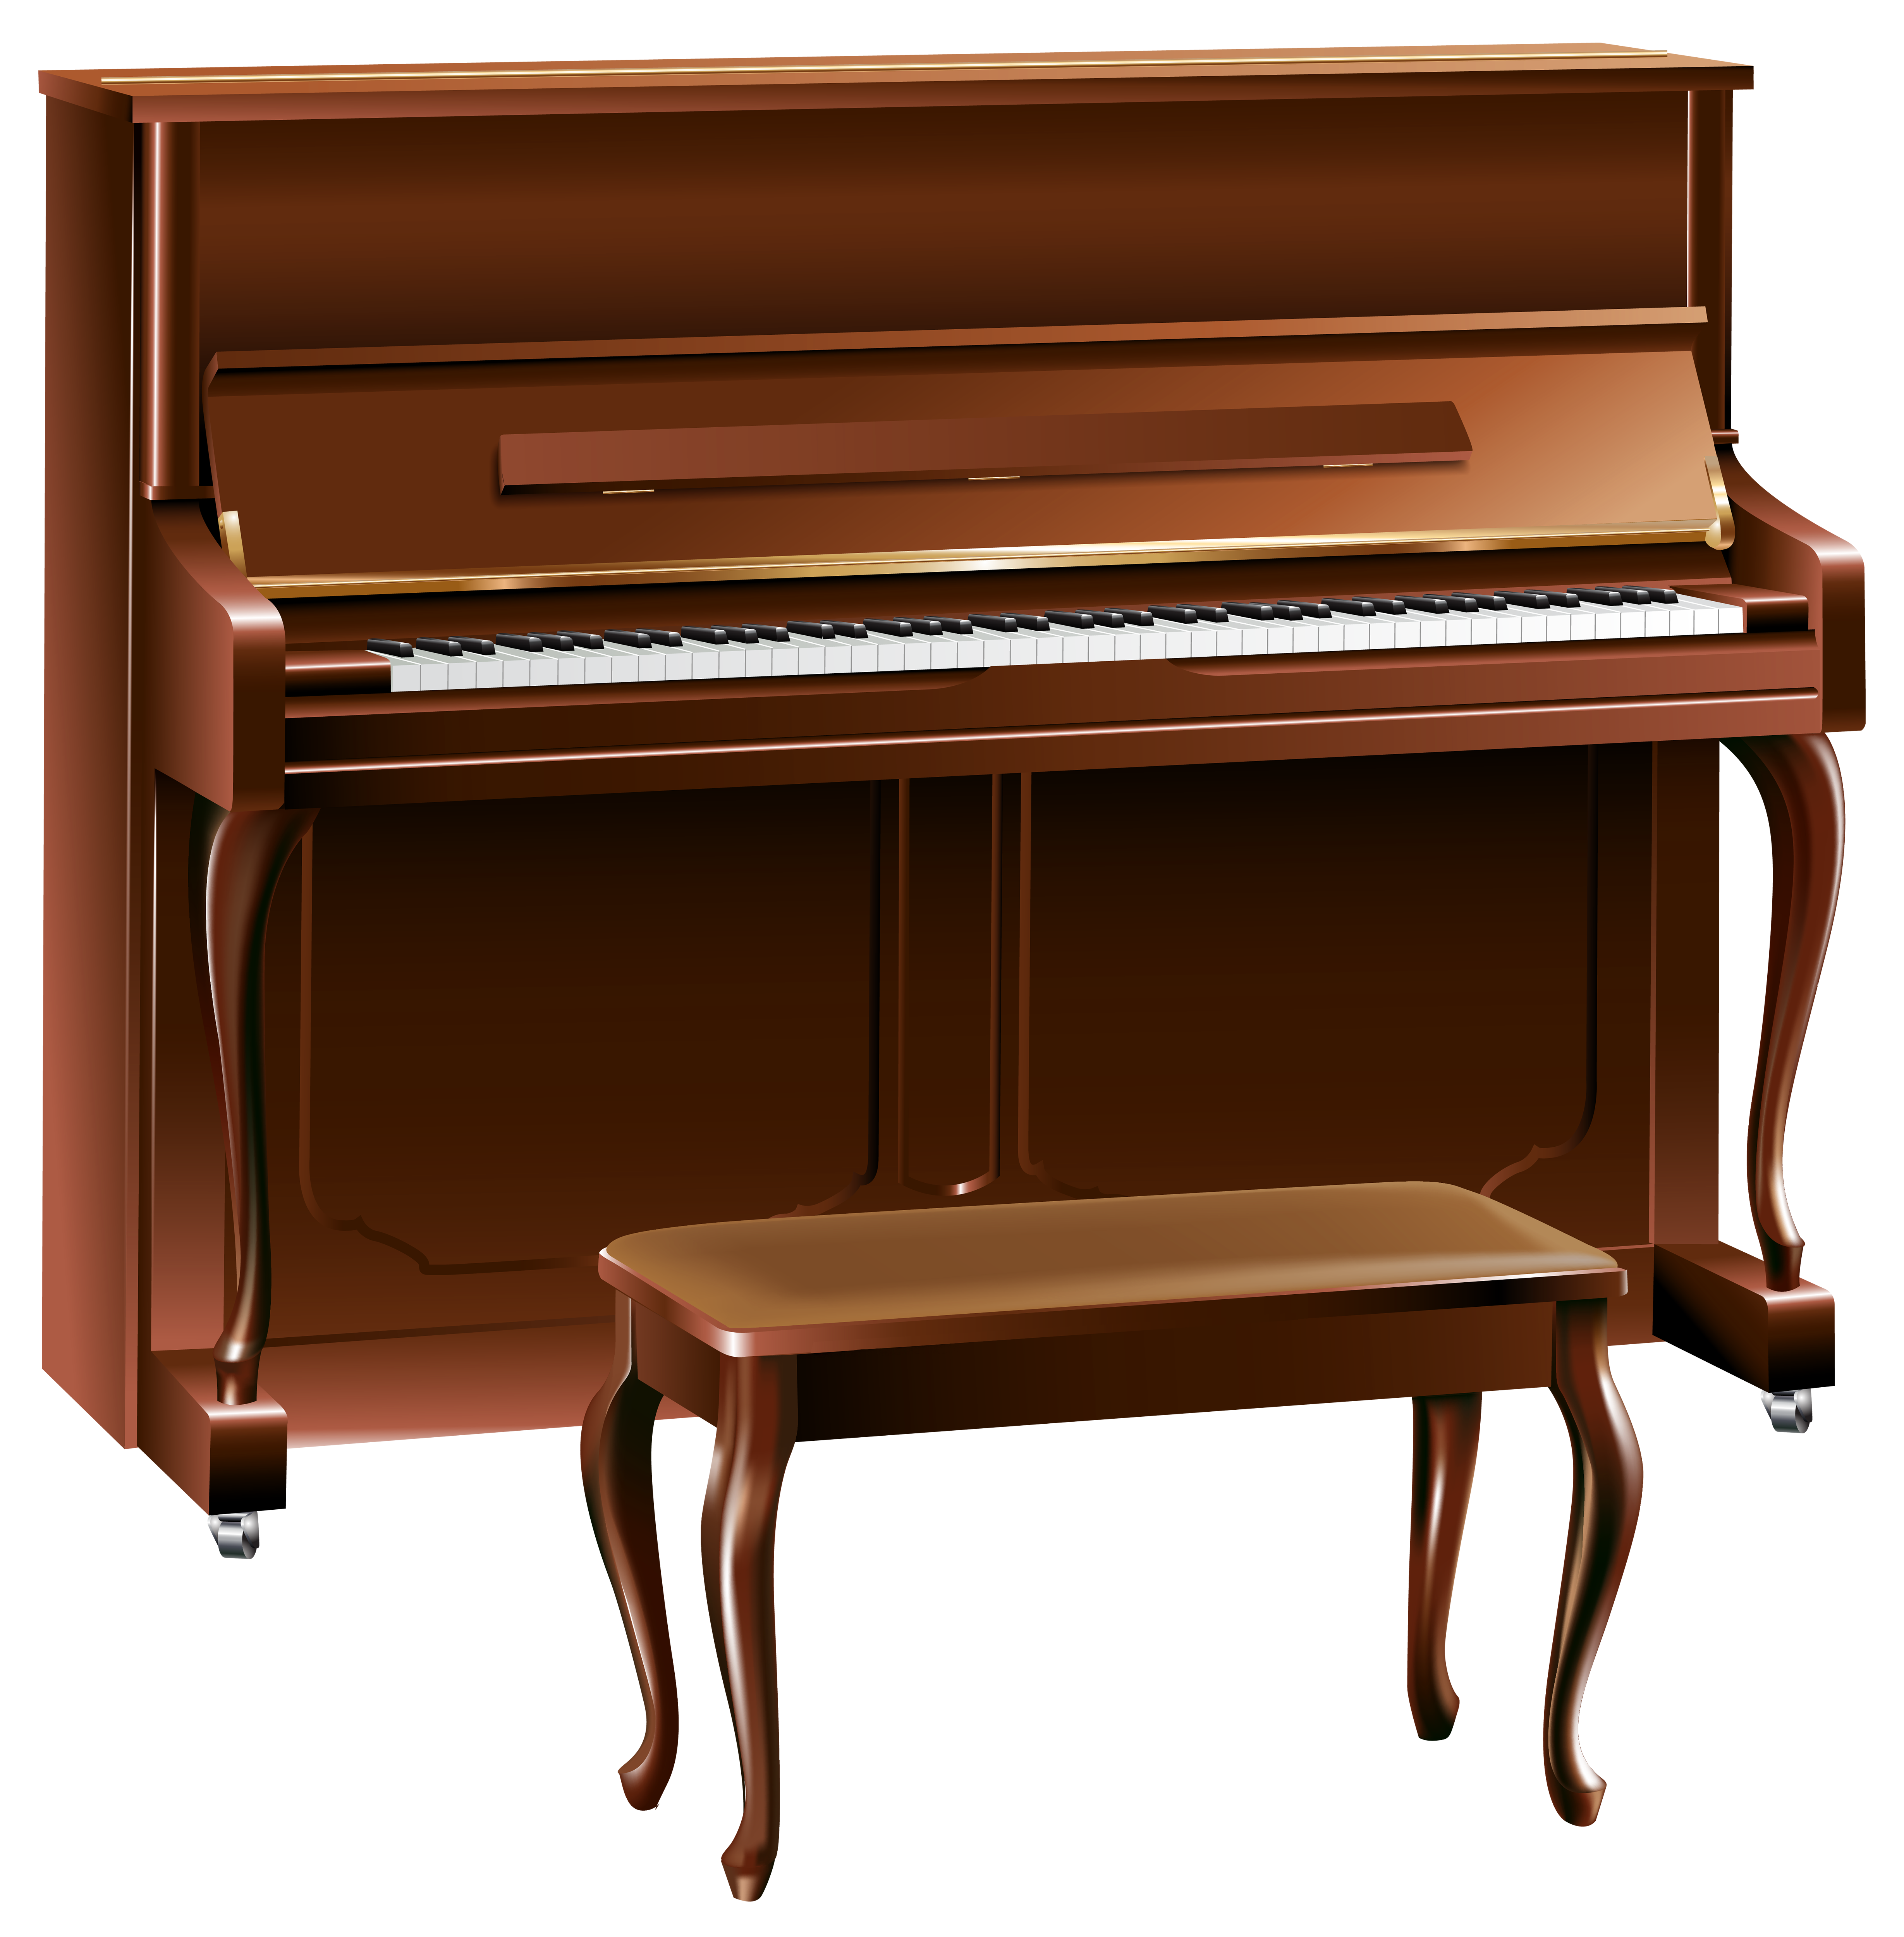 Clipart piano gratuit graphic Clipart piano gratuit - ClipartNinja graphic